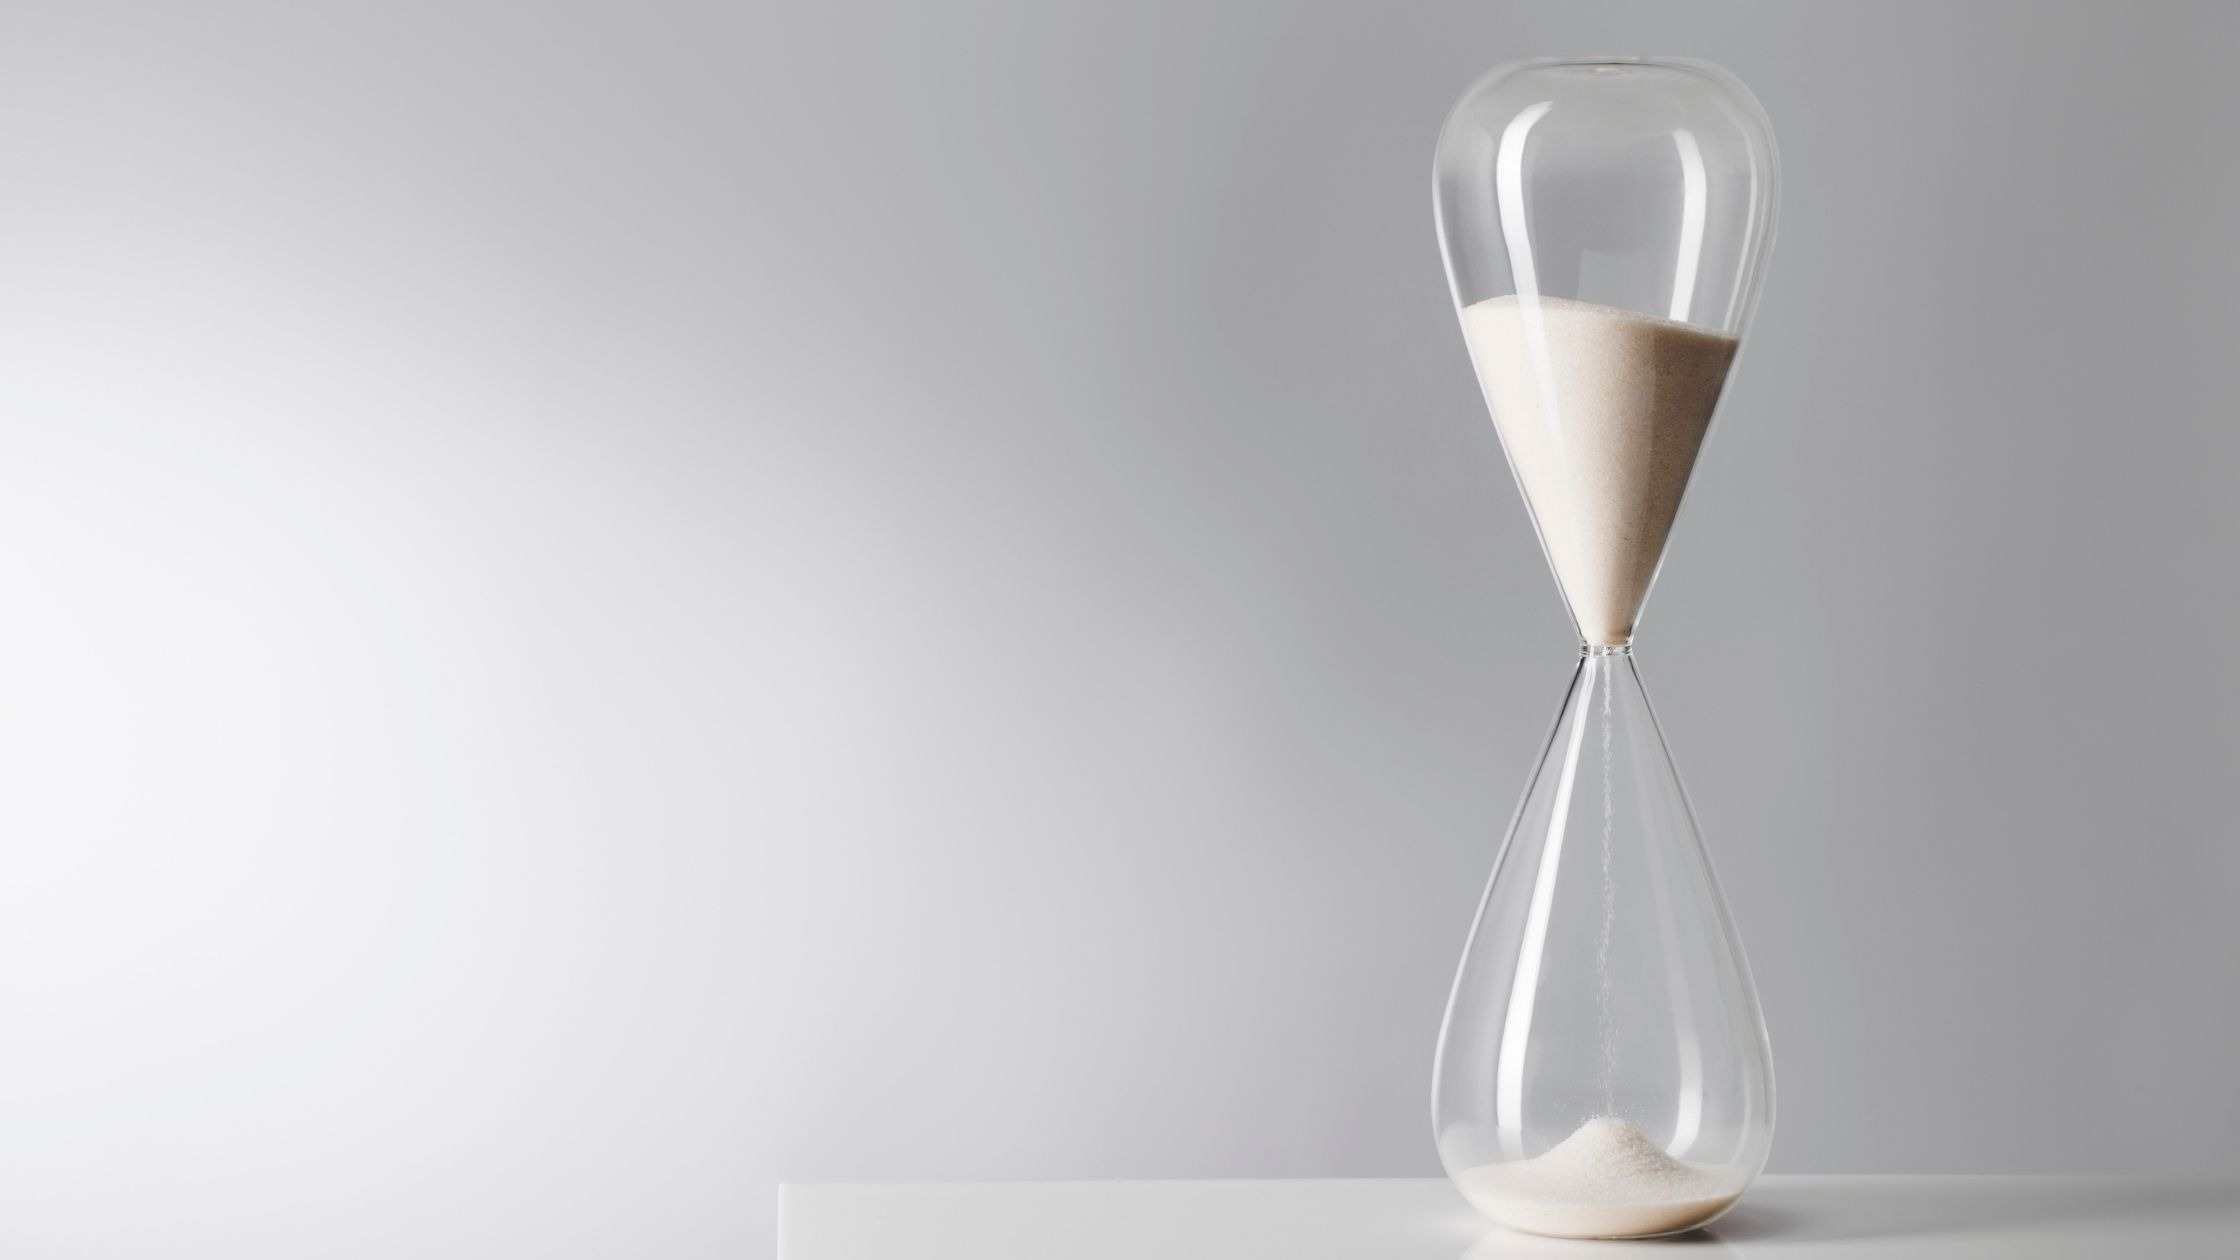 Hourglass indicating time for a quick makeup routine